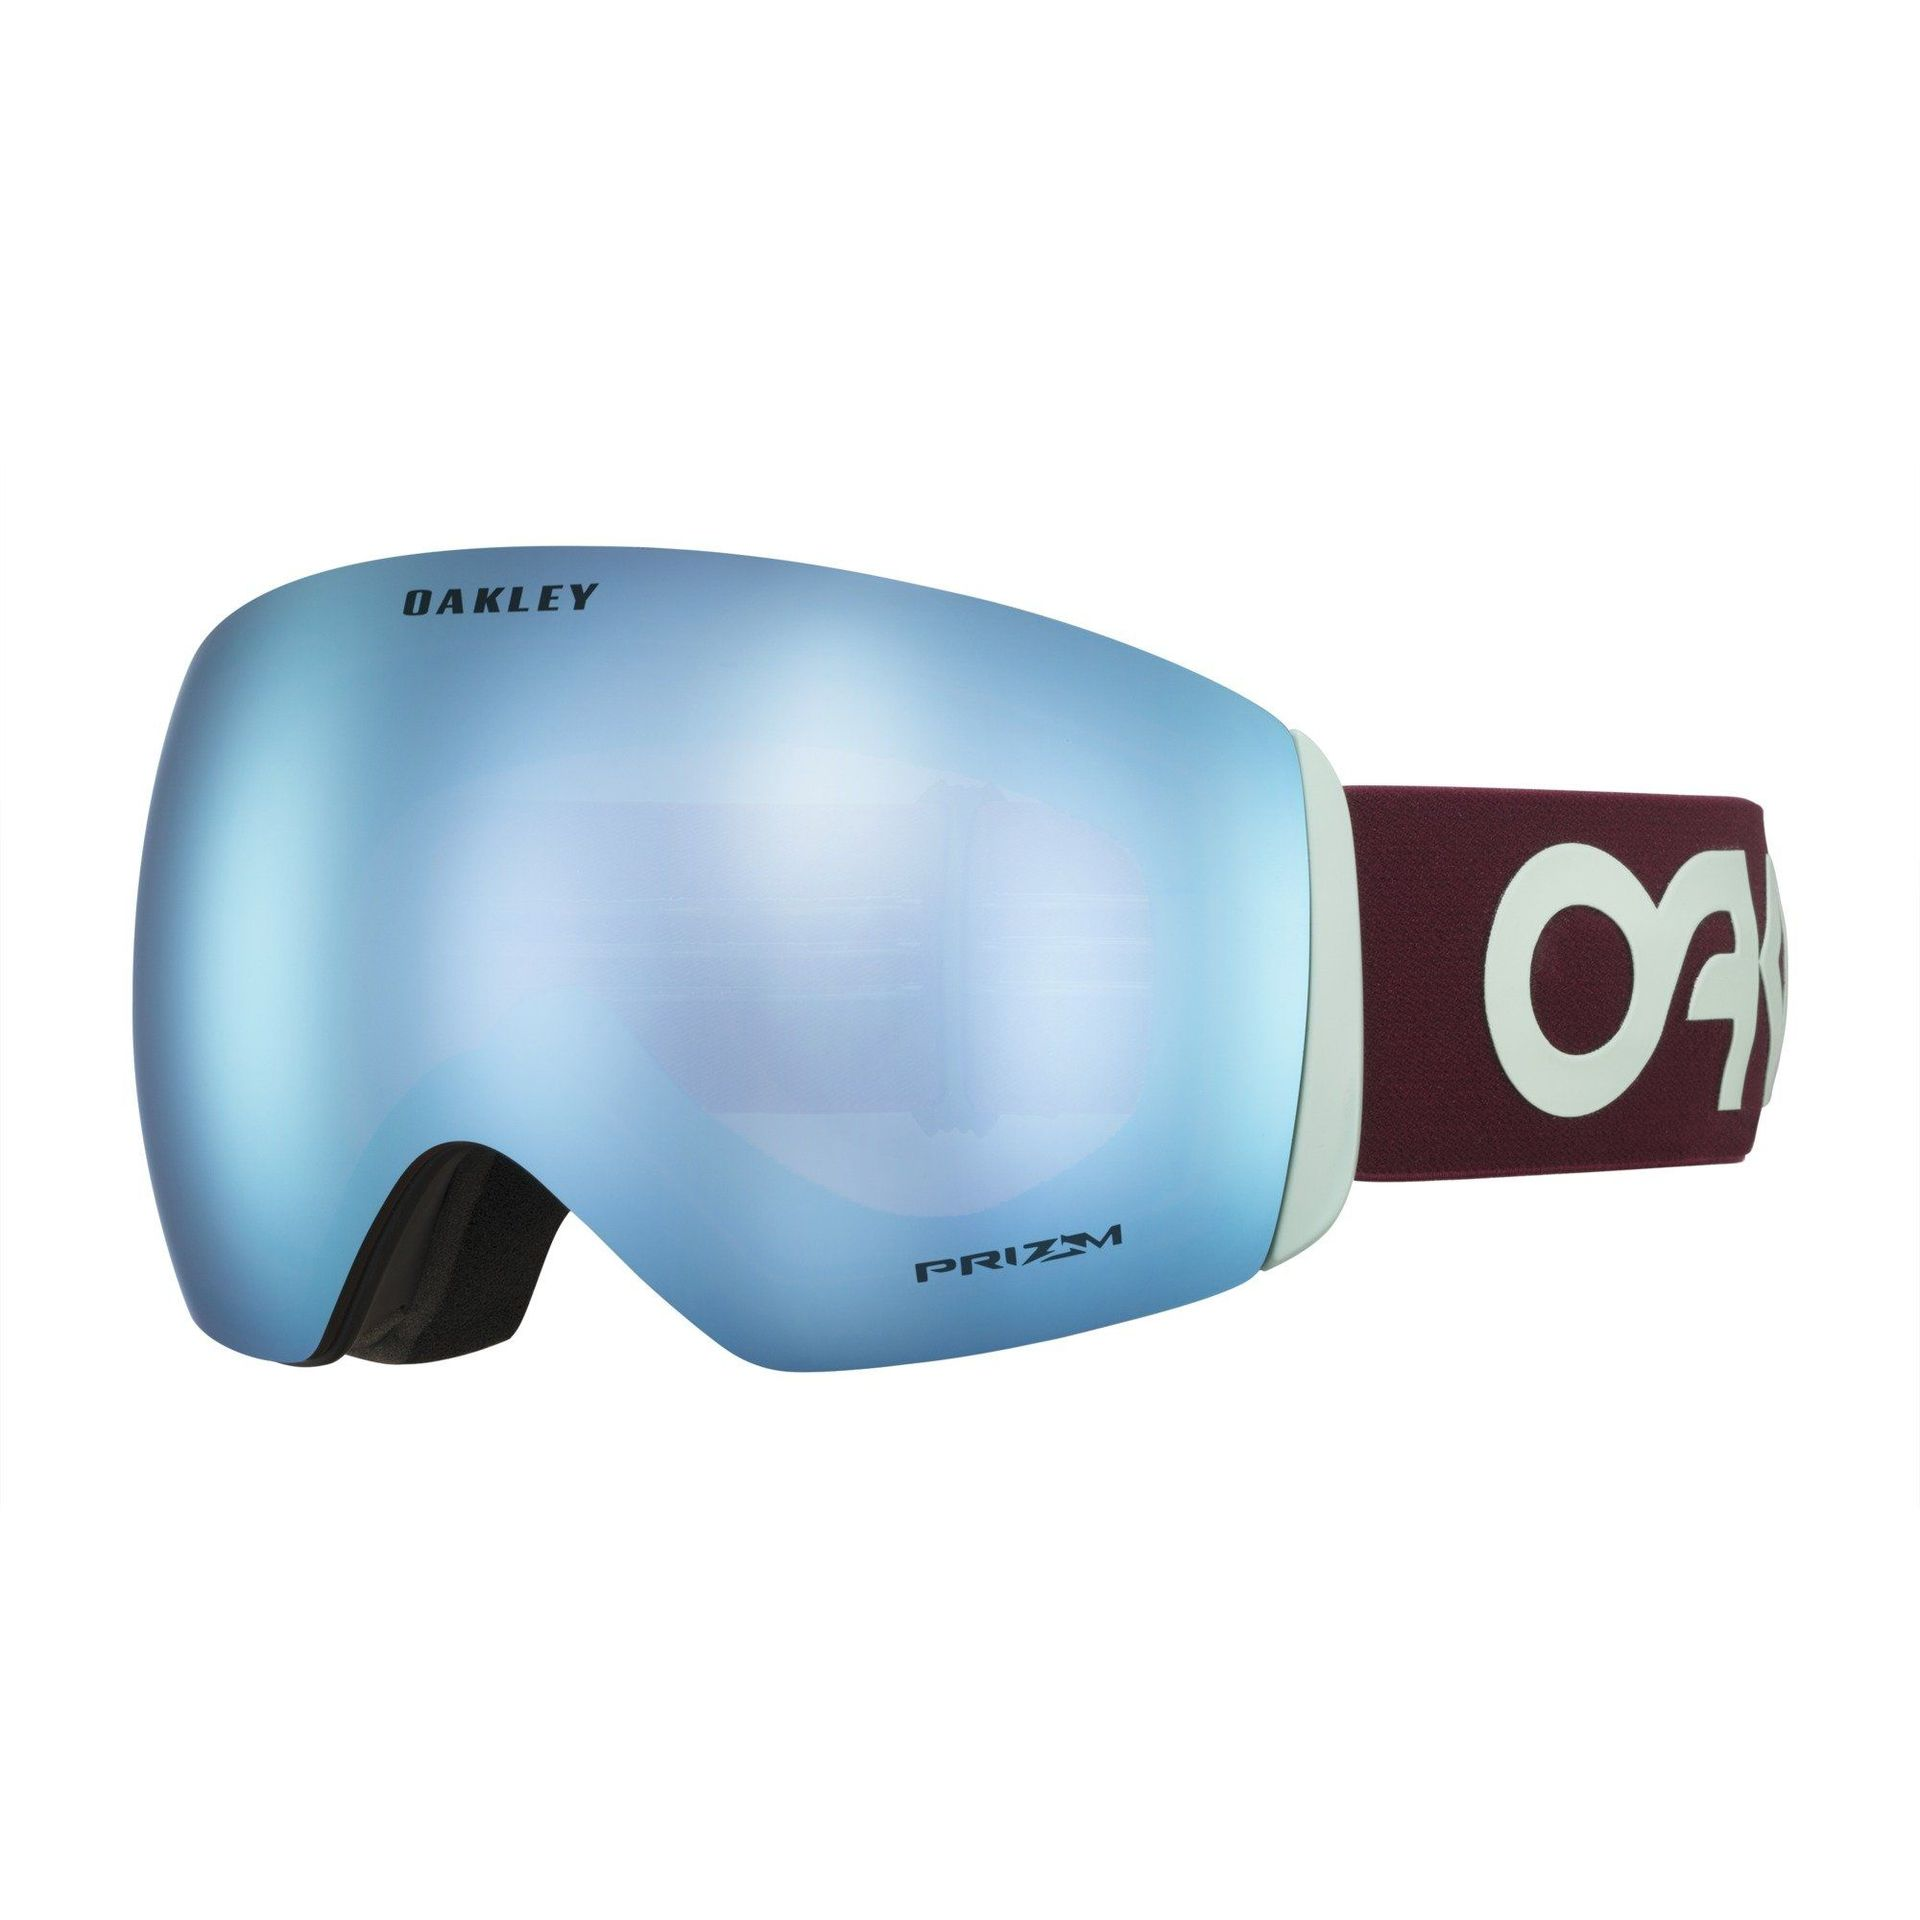 GOGLE OAKLEY FLIGHT DECK FACTORY PILOT PROGRESSION|PRIZM SNOW SAPPHIRE IRIDIUM 1